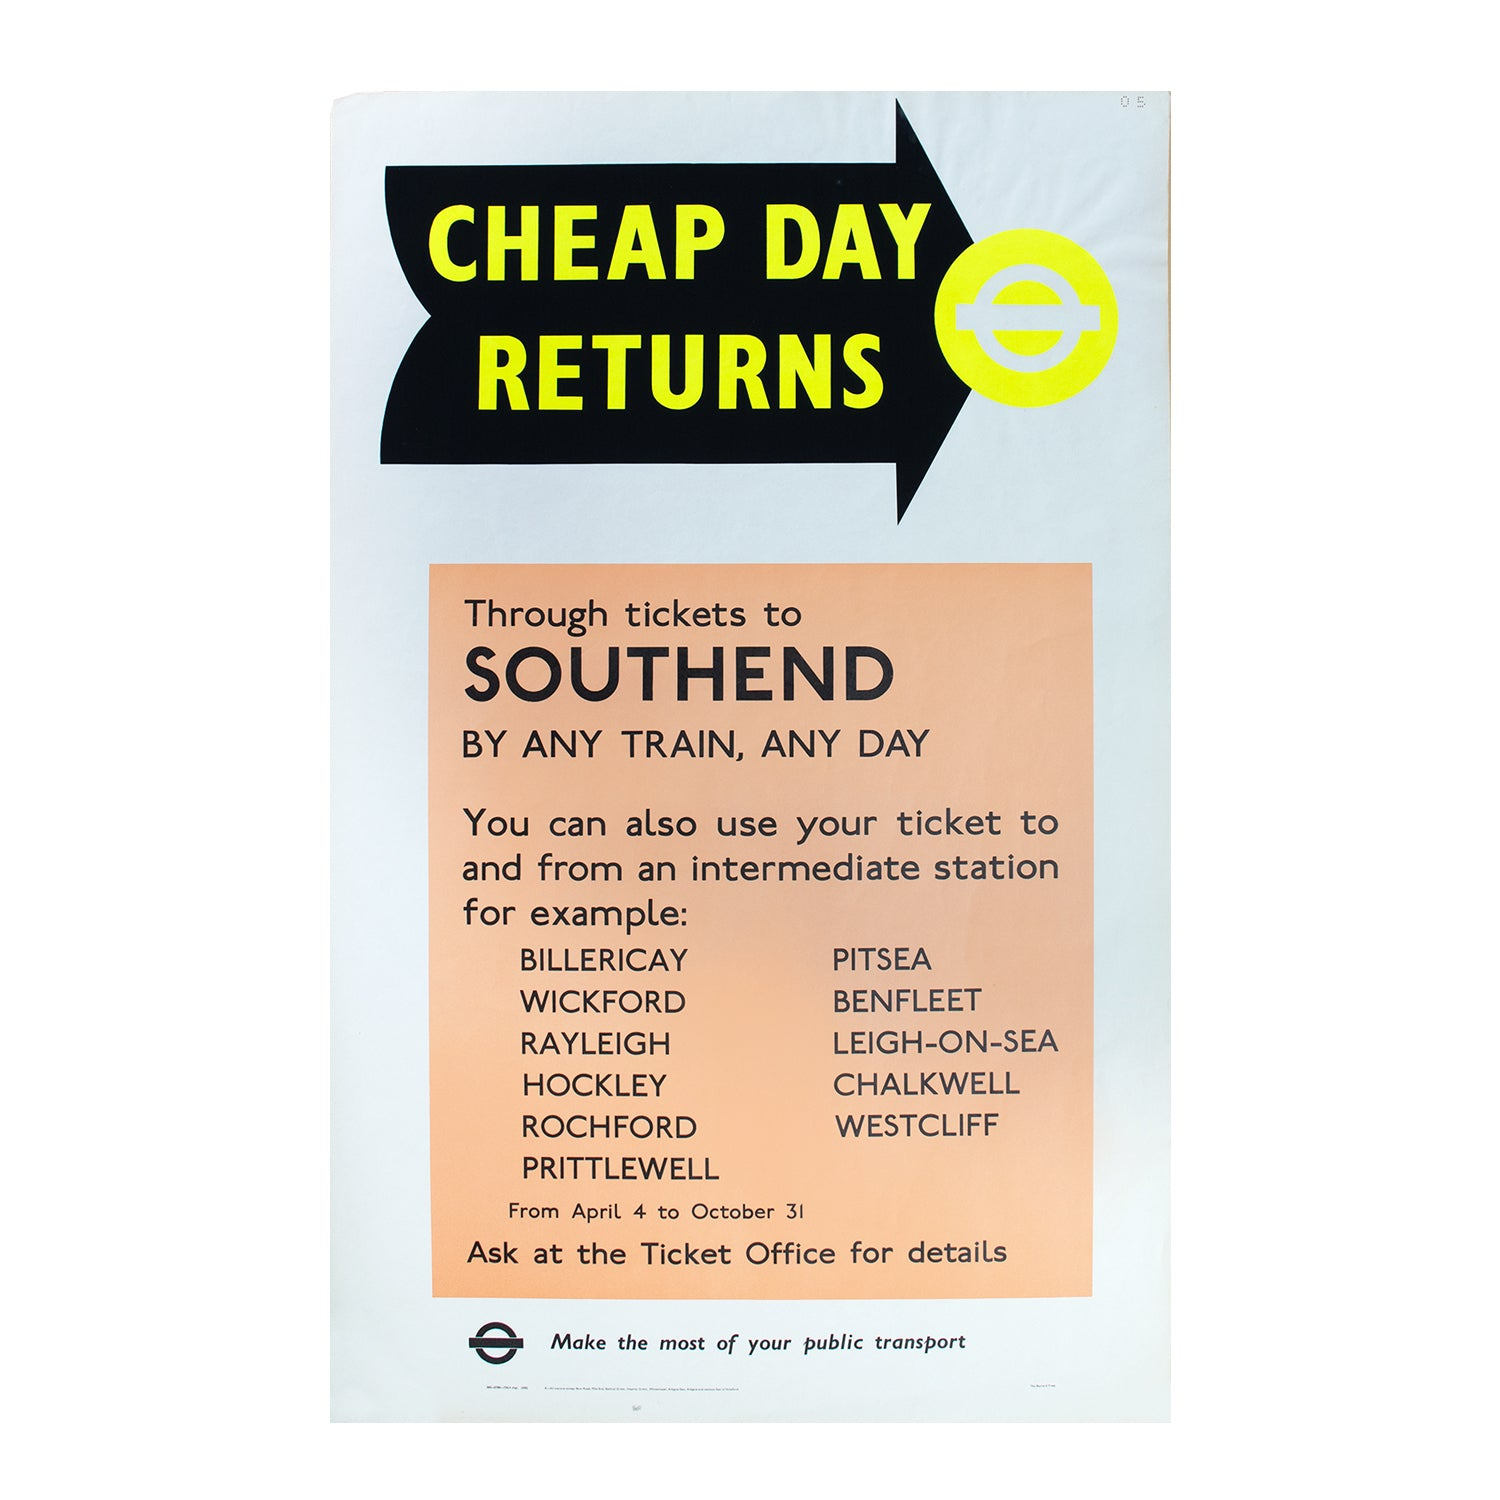 Cheap Day Returns to Southend